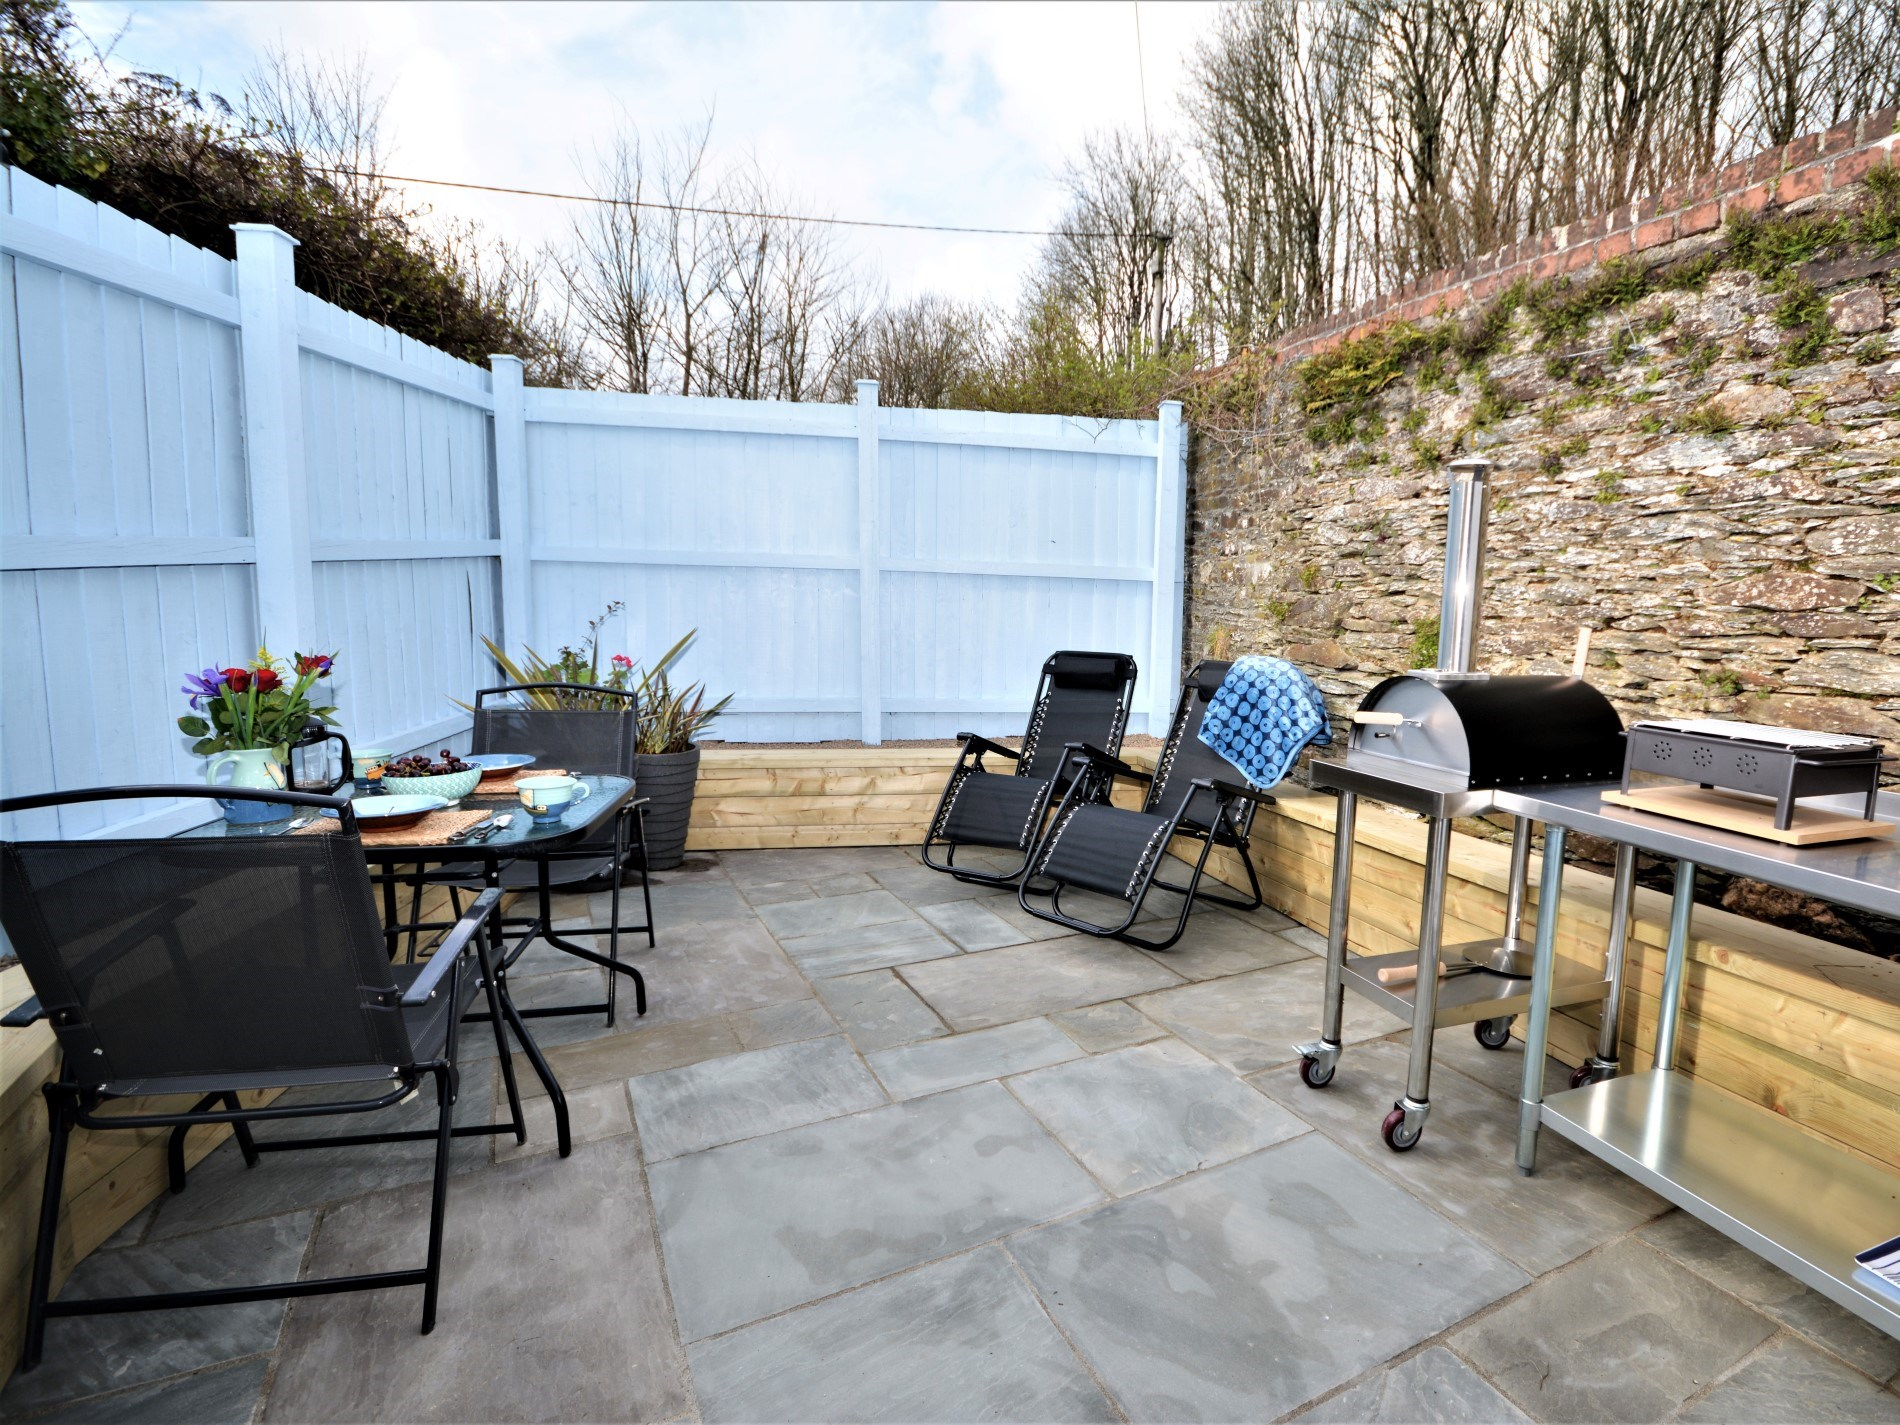 1 Bedroom Wing in South Cornwall, Cornwall